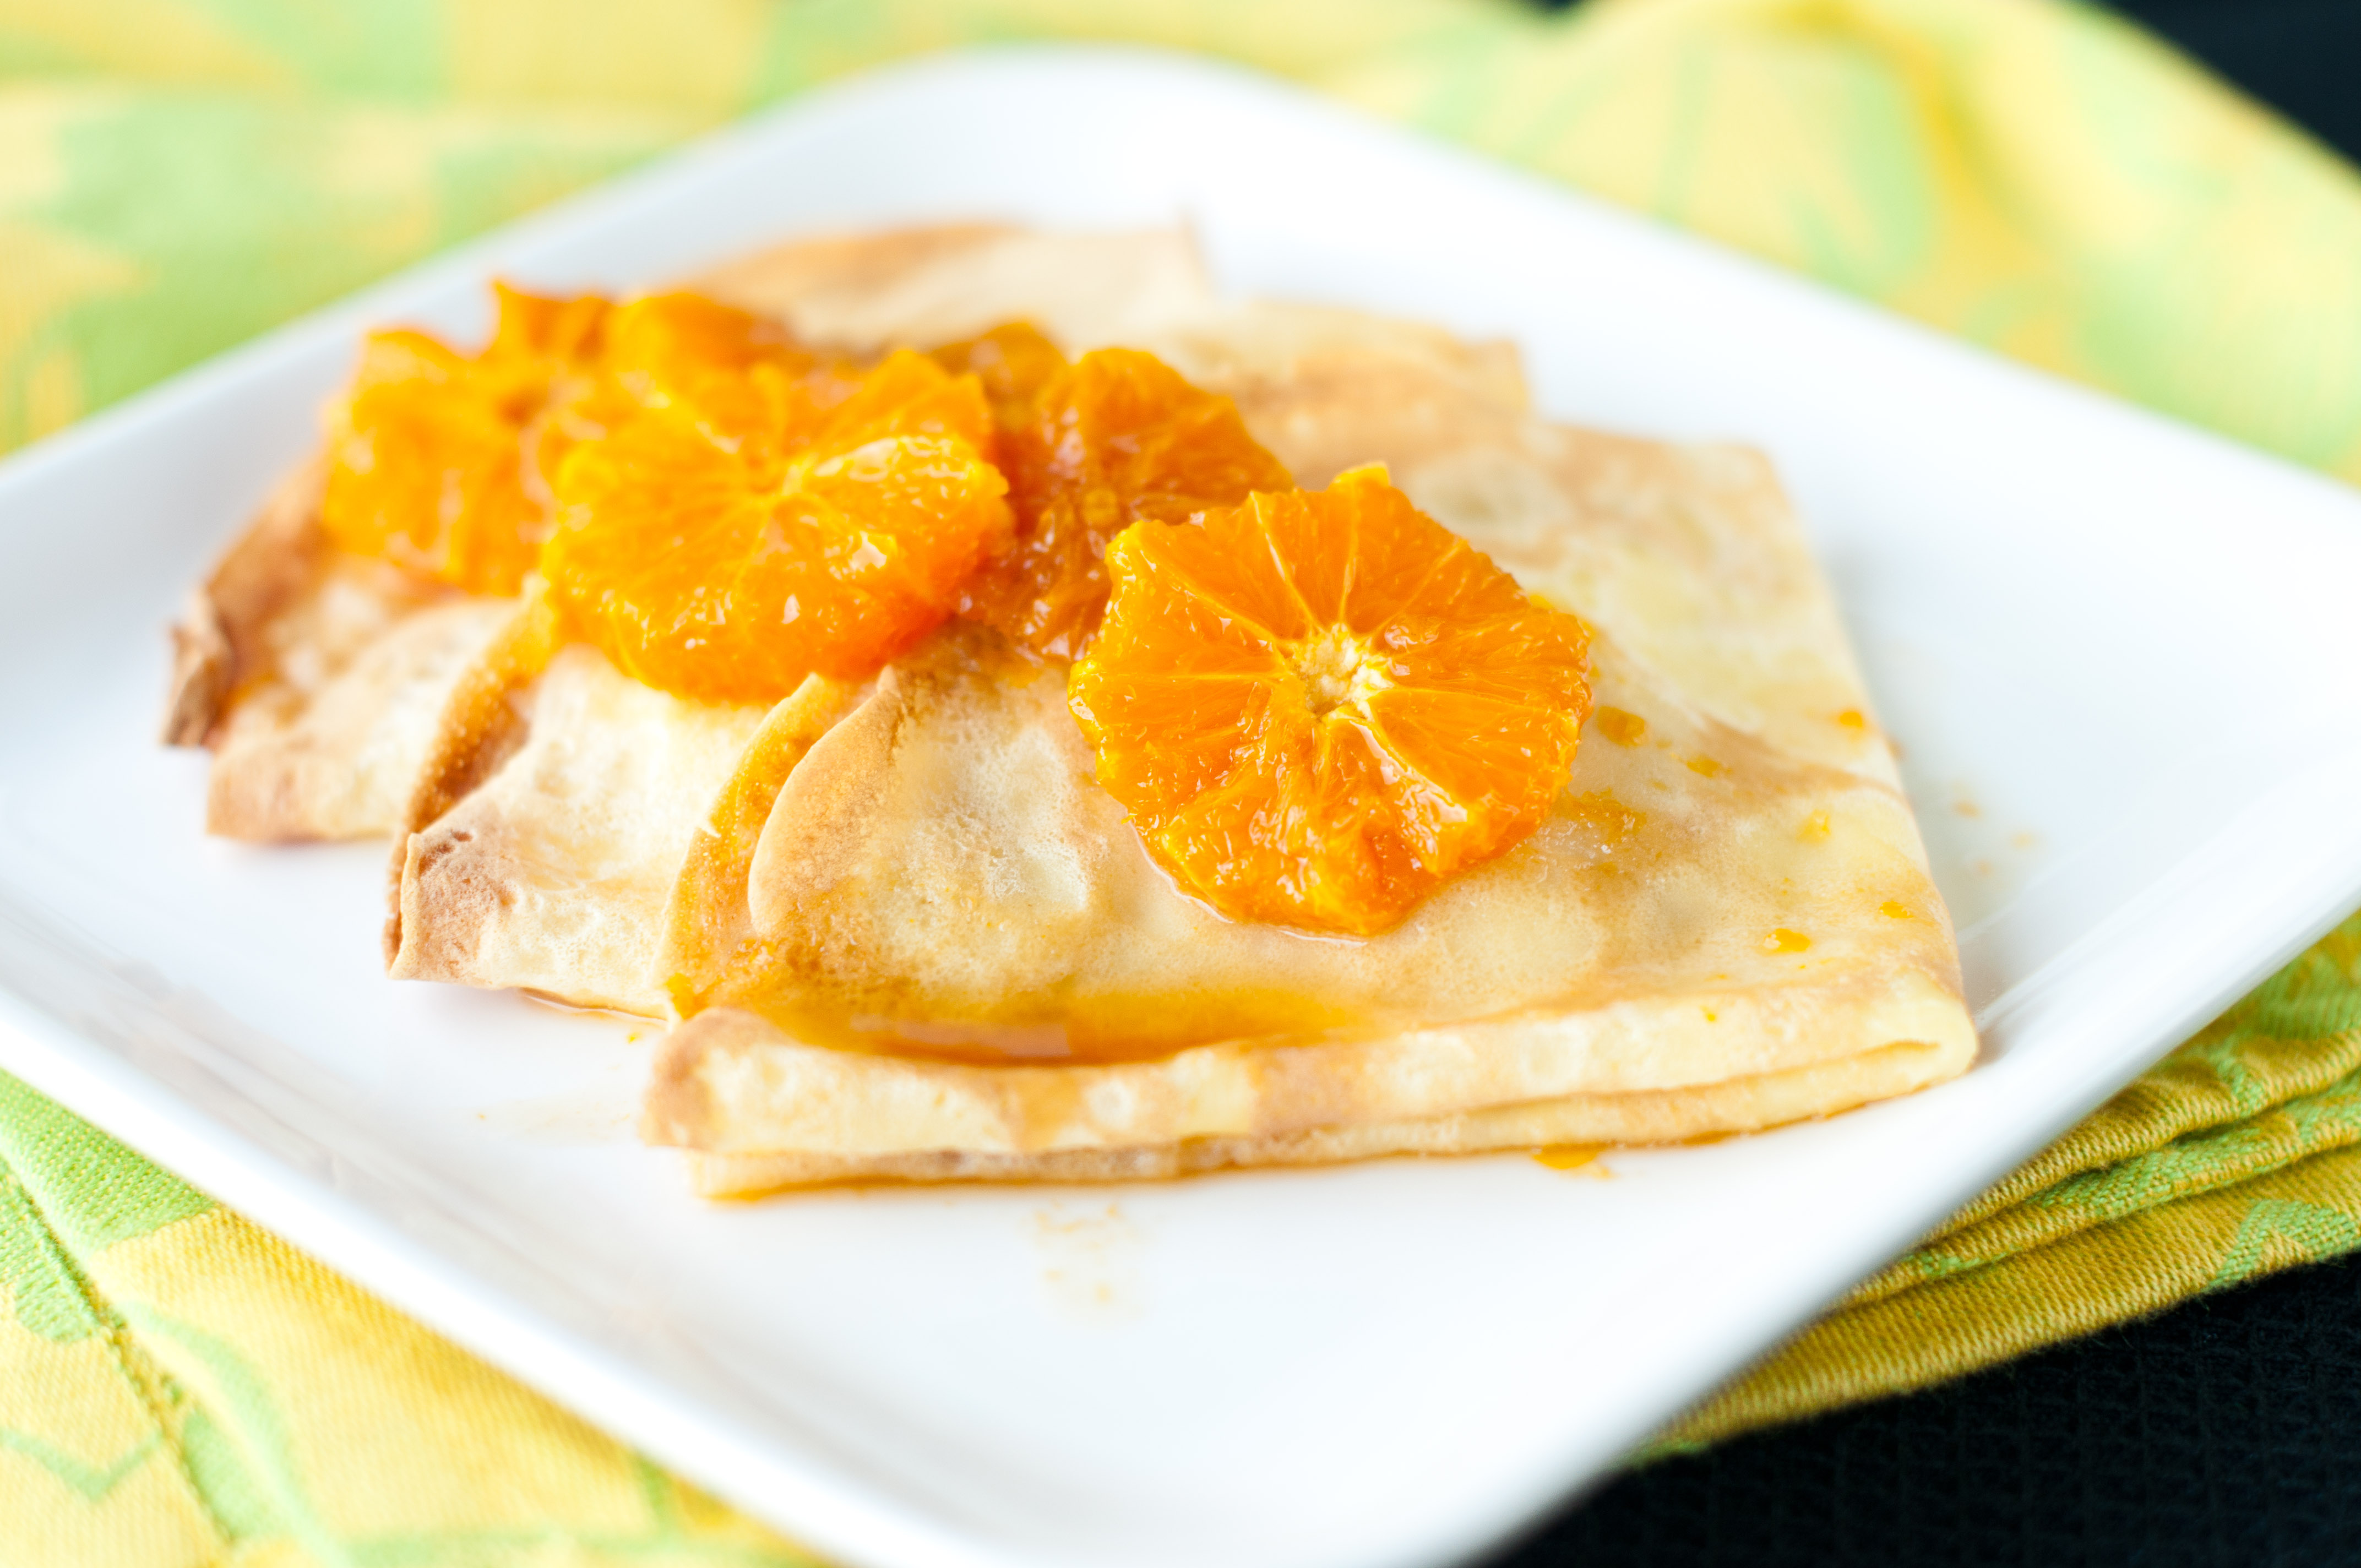 clementine ricotta crepes with honey clementine sauce ricotta cream ...